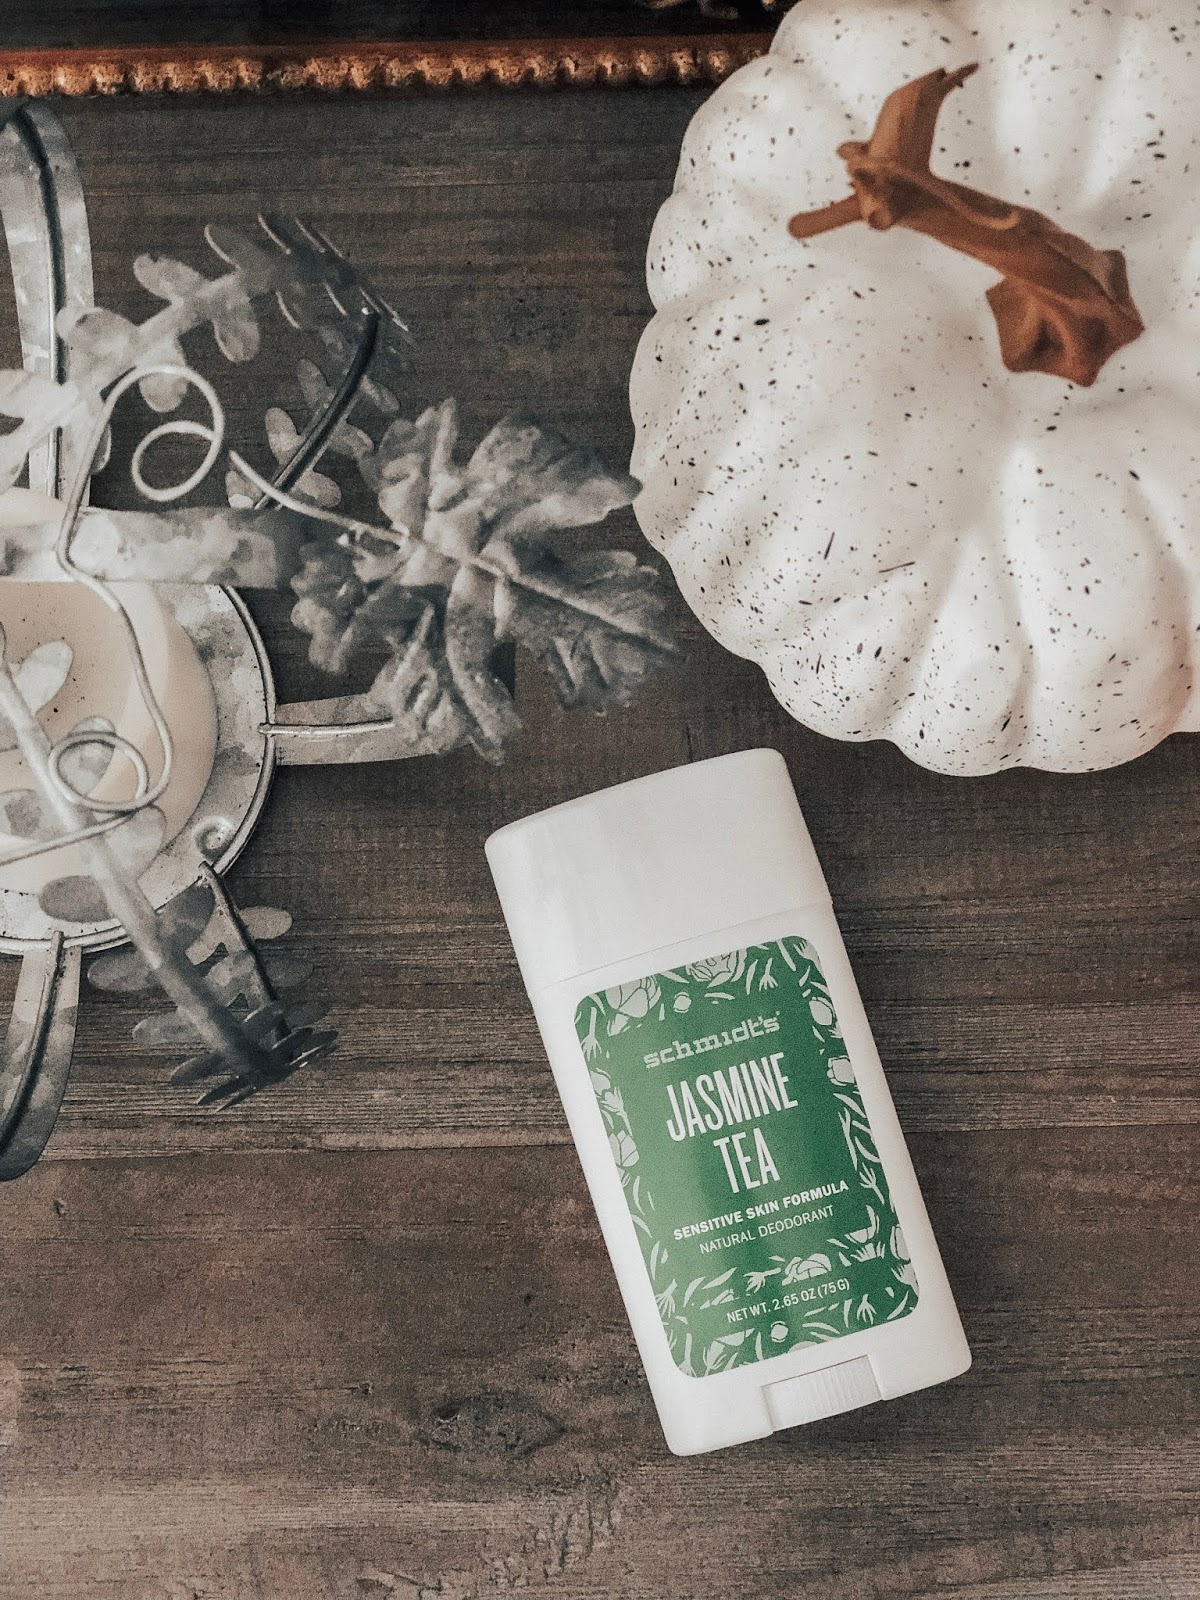 The 5 Clean Beauty Products & Brands You Need to Use - Schmidt's Jasmine Tea Sensitive Skin Deodorant - Tips from Amanda Burrows, a Tampa Bay Beauty Blogger